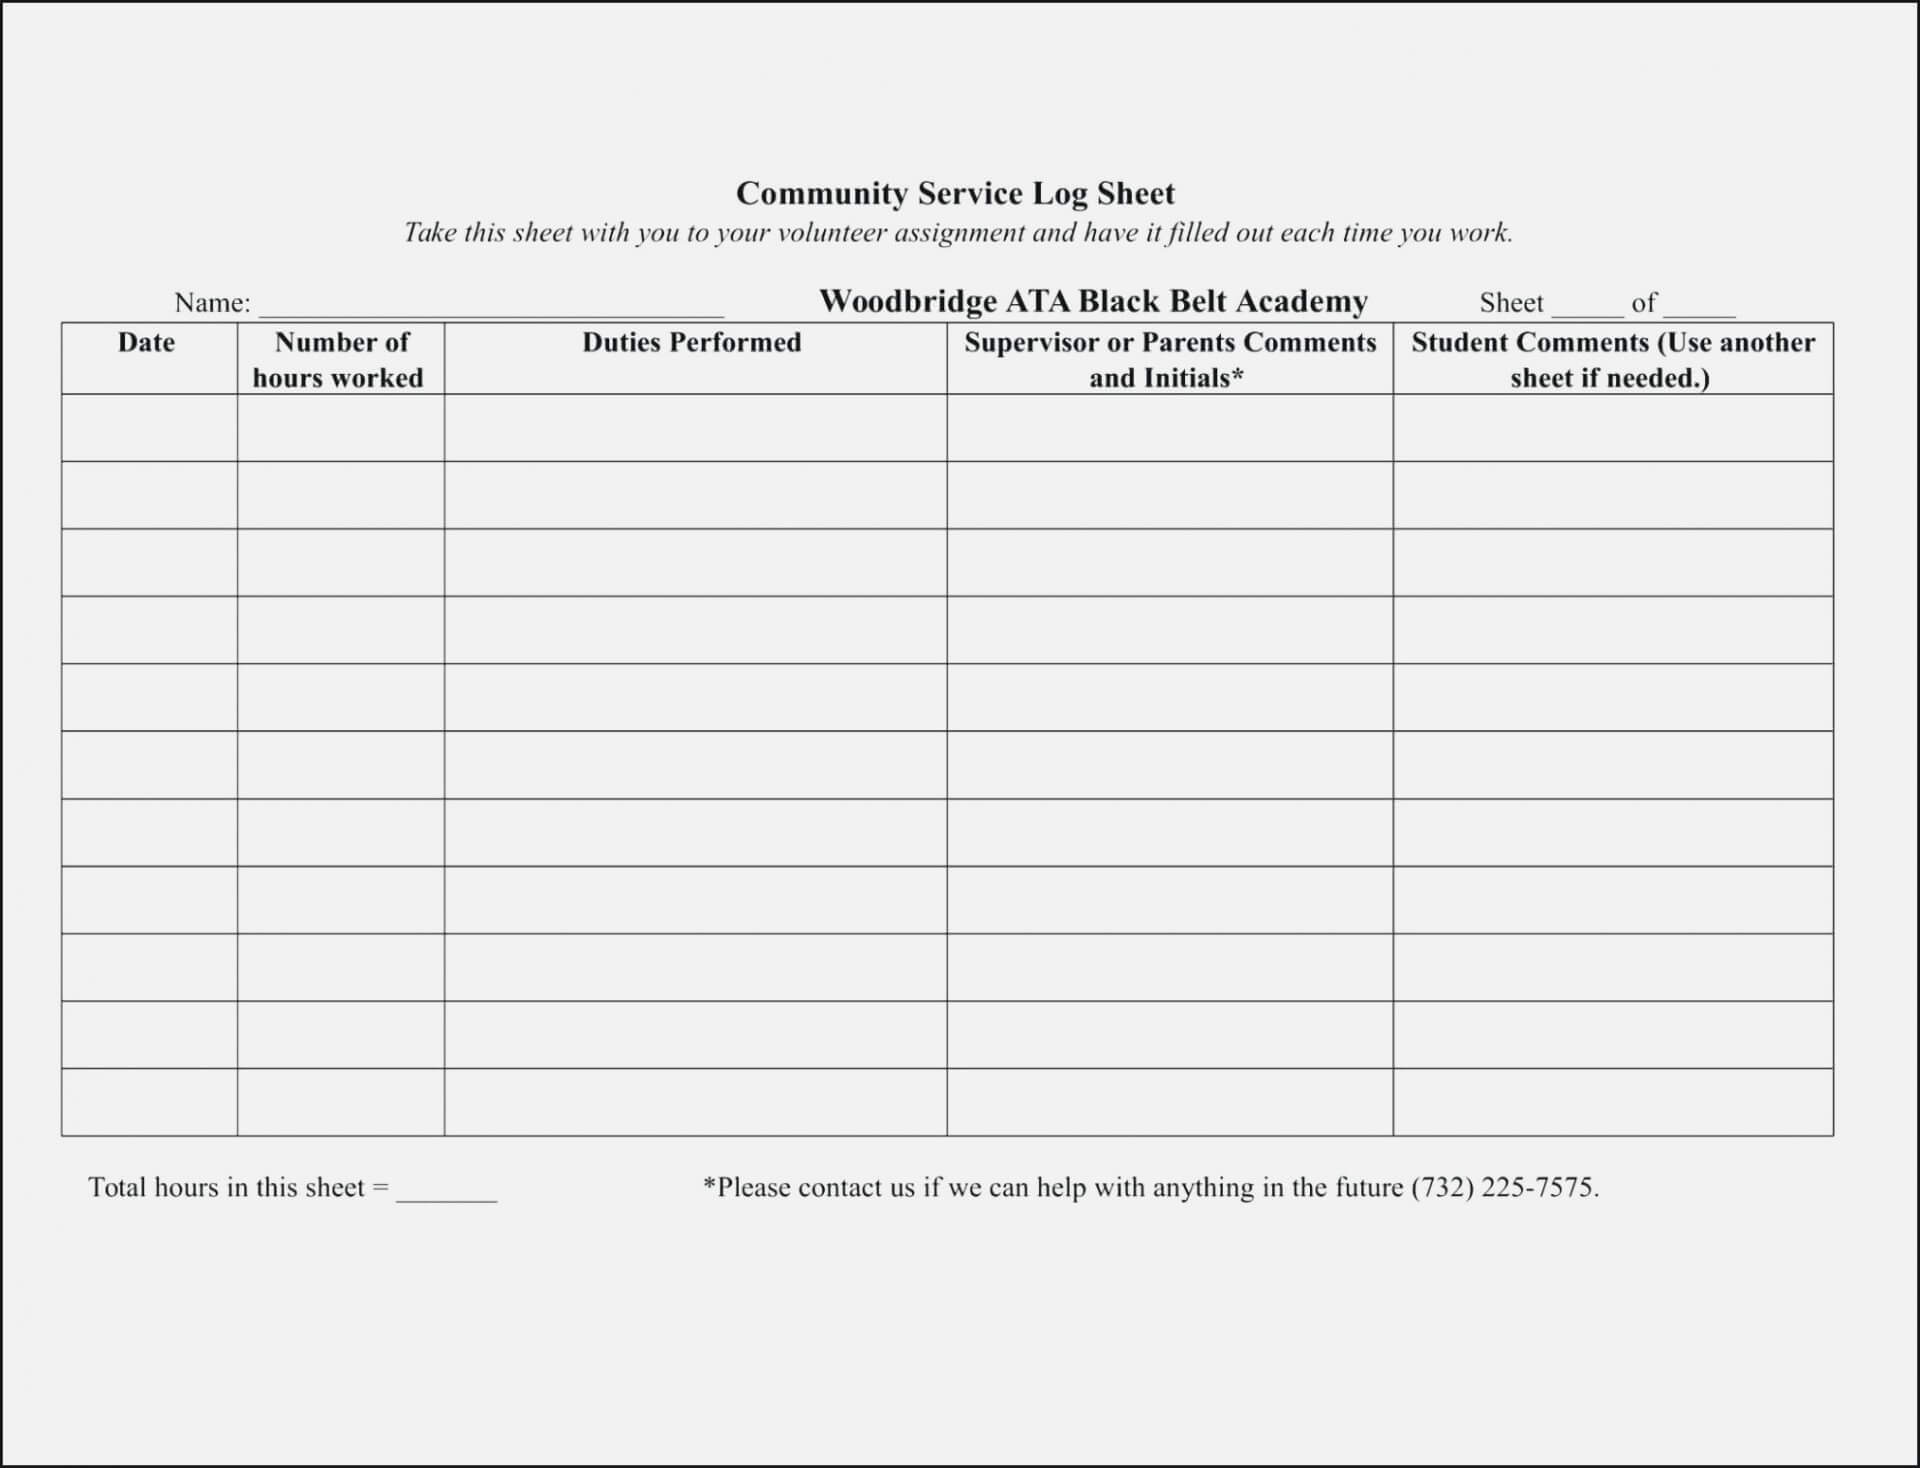 025 Volunteer Sign Up Form Template Sheet Templates Ideas For Community Service Template Word